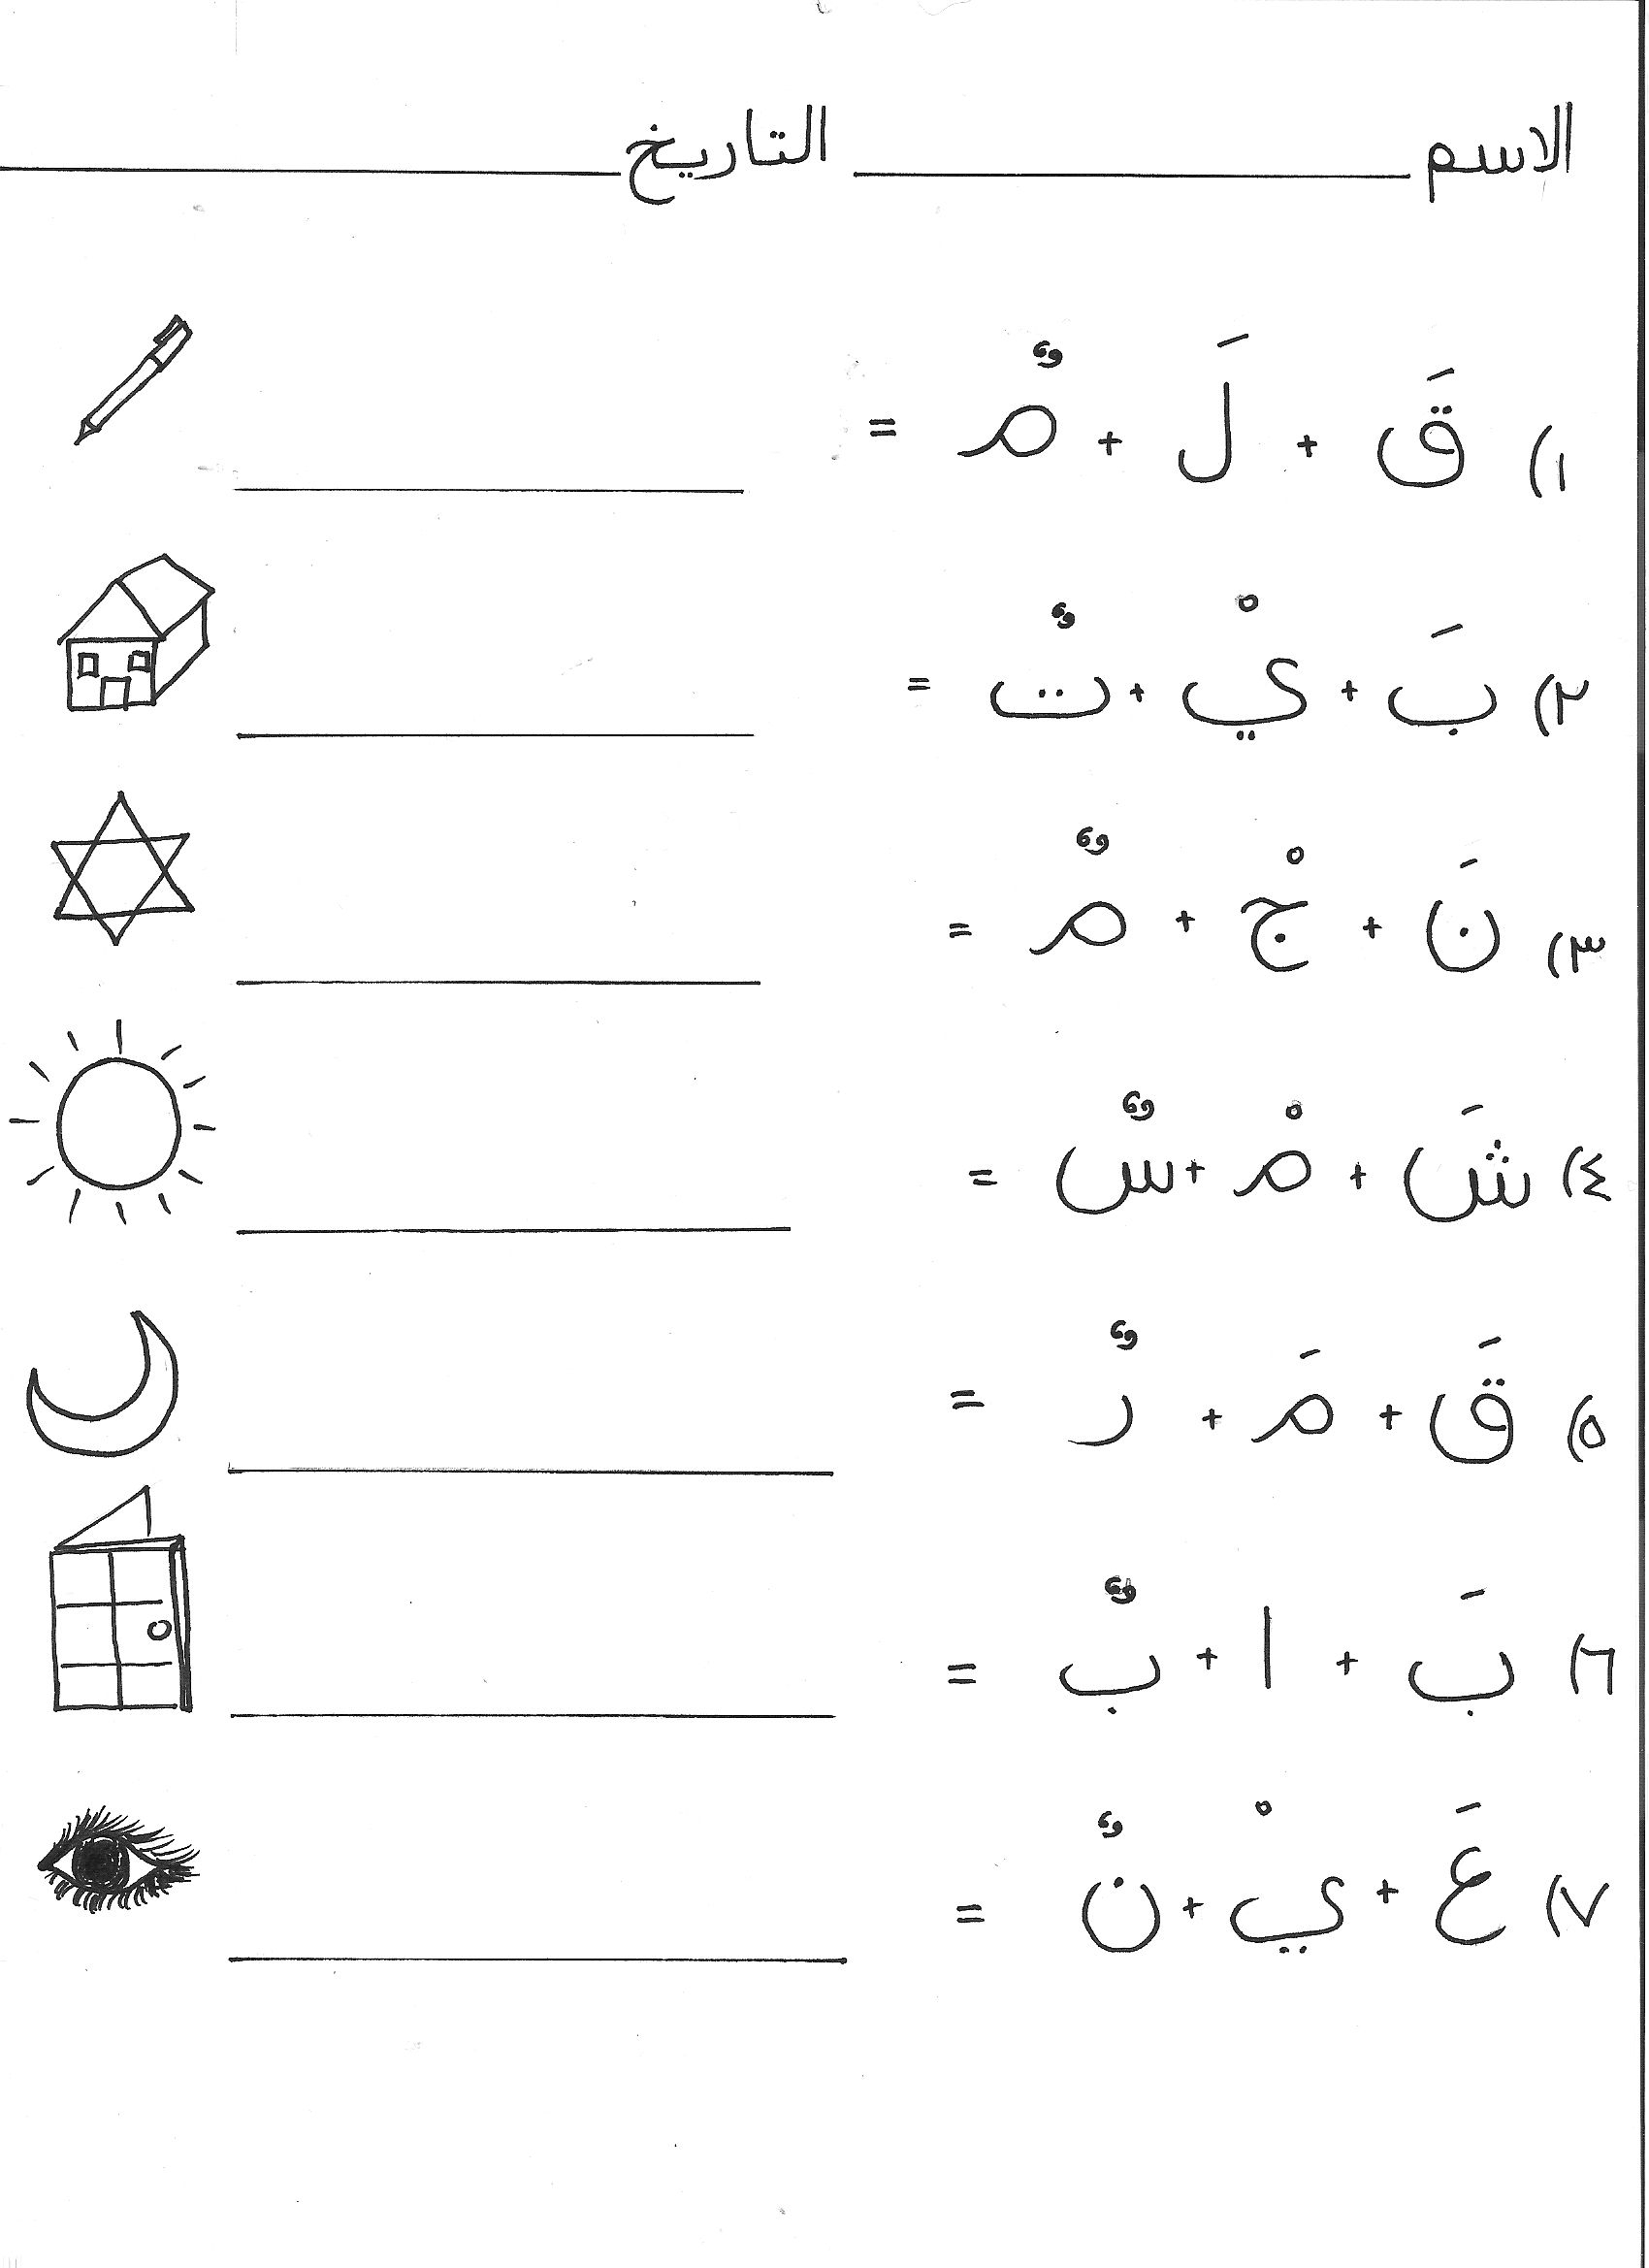 Joining Letters To Make Words - Funarabicworksheets | Arabic in Letter Join Worksheets Free